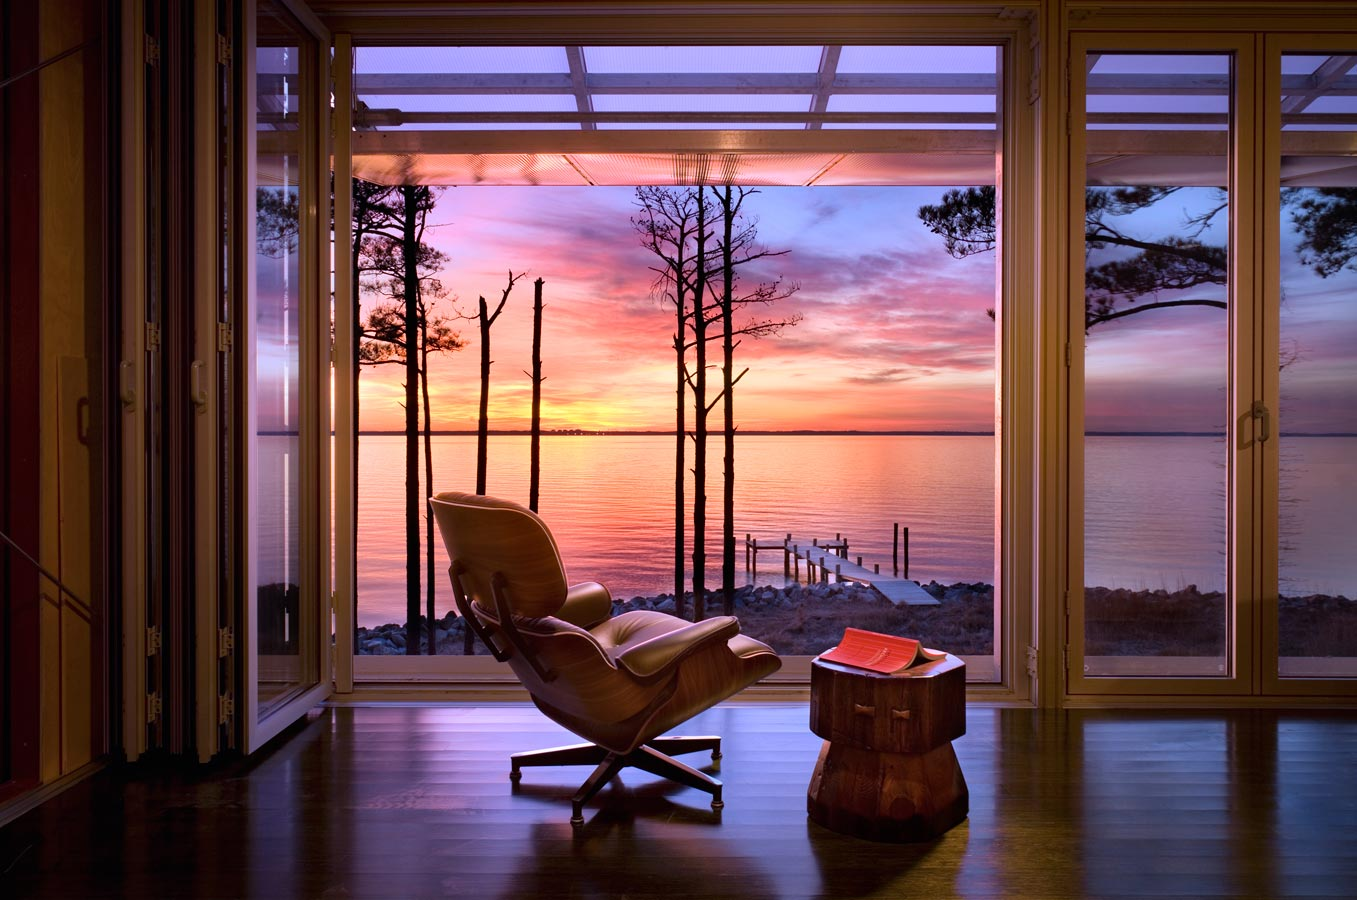 <p>A view from the interior of the house overlooking the Chesapeake Bay at sunset. <br><small>© Peter Aaron/OTTO</small></p>